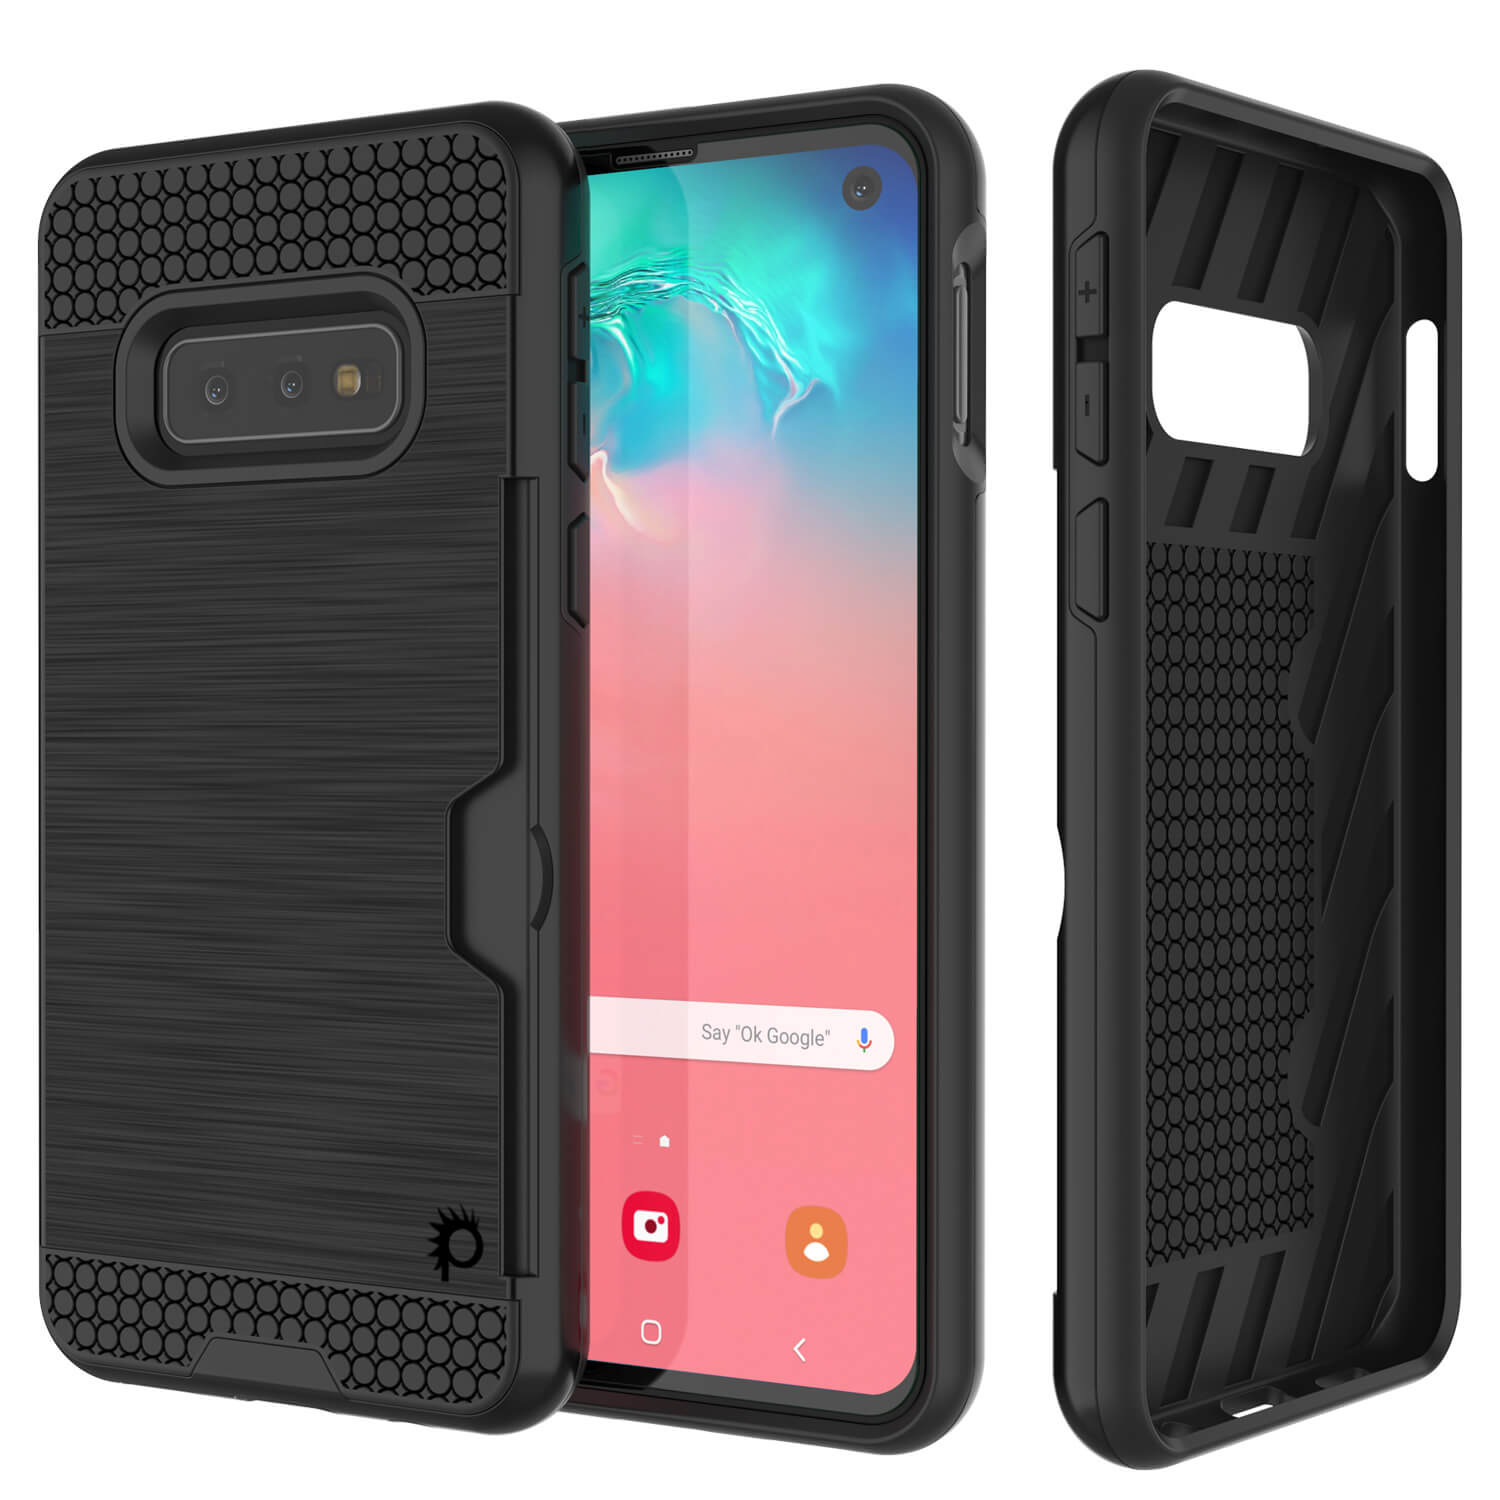 Galaxy S10 Lite Case, PUNKcase [SLOT Series] [Slim Fit] Dual-Layer Armor Cover w/Integrated Anti-Shock System, Credit Card Slot [Black]